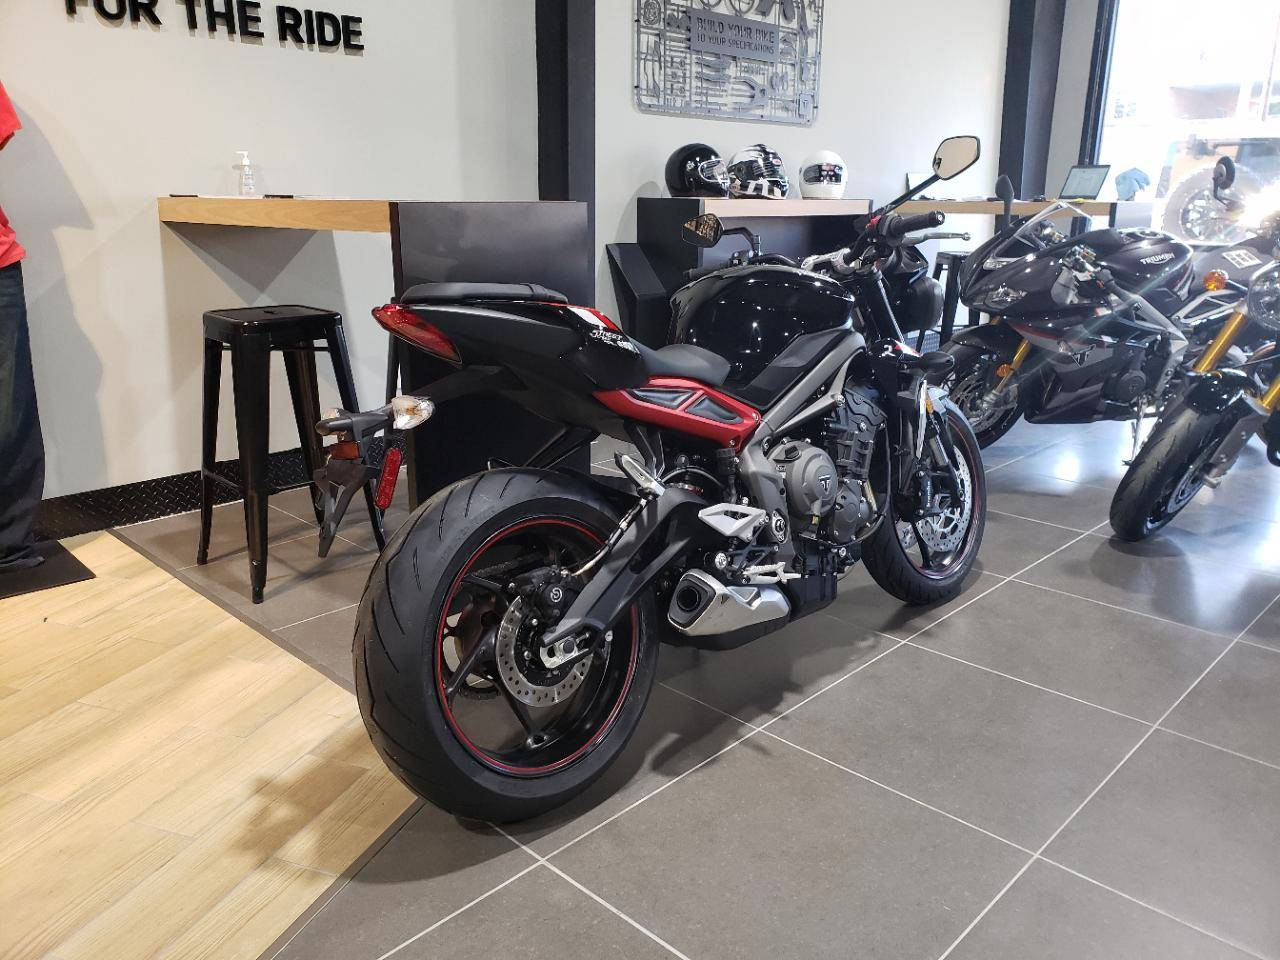 STREET TRIPLE R LRH - Photo 3